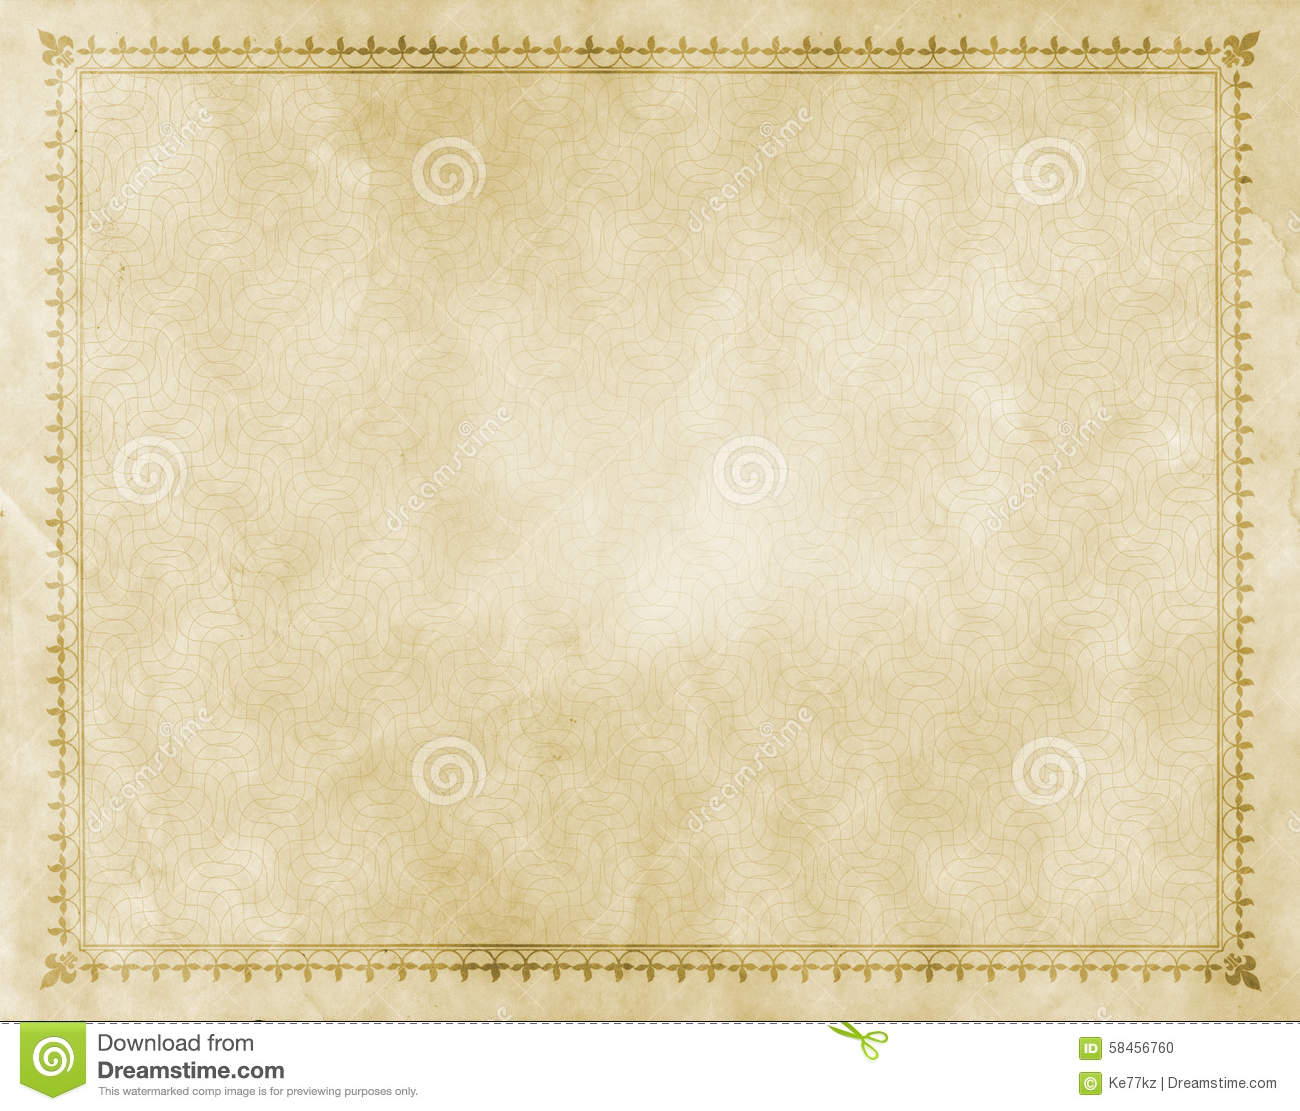 Old Paper With Decorative Vintage Border. Stock Photo ...